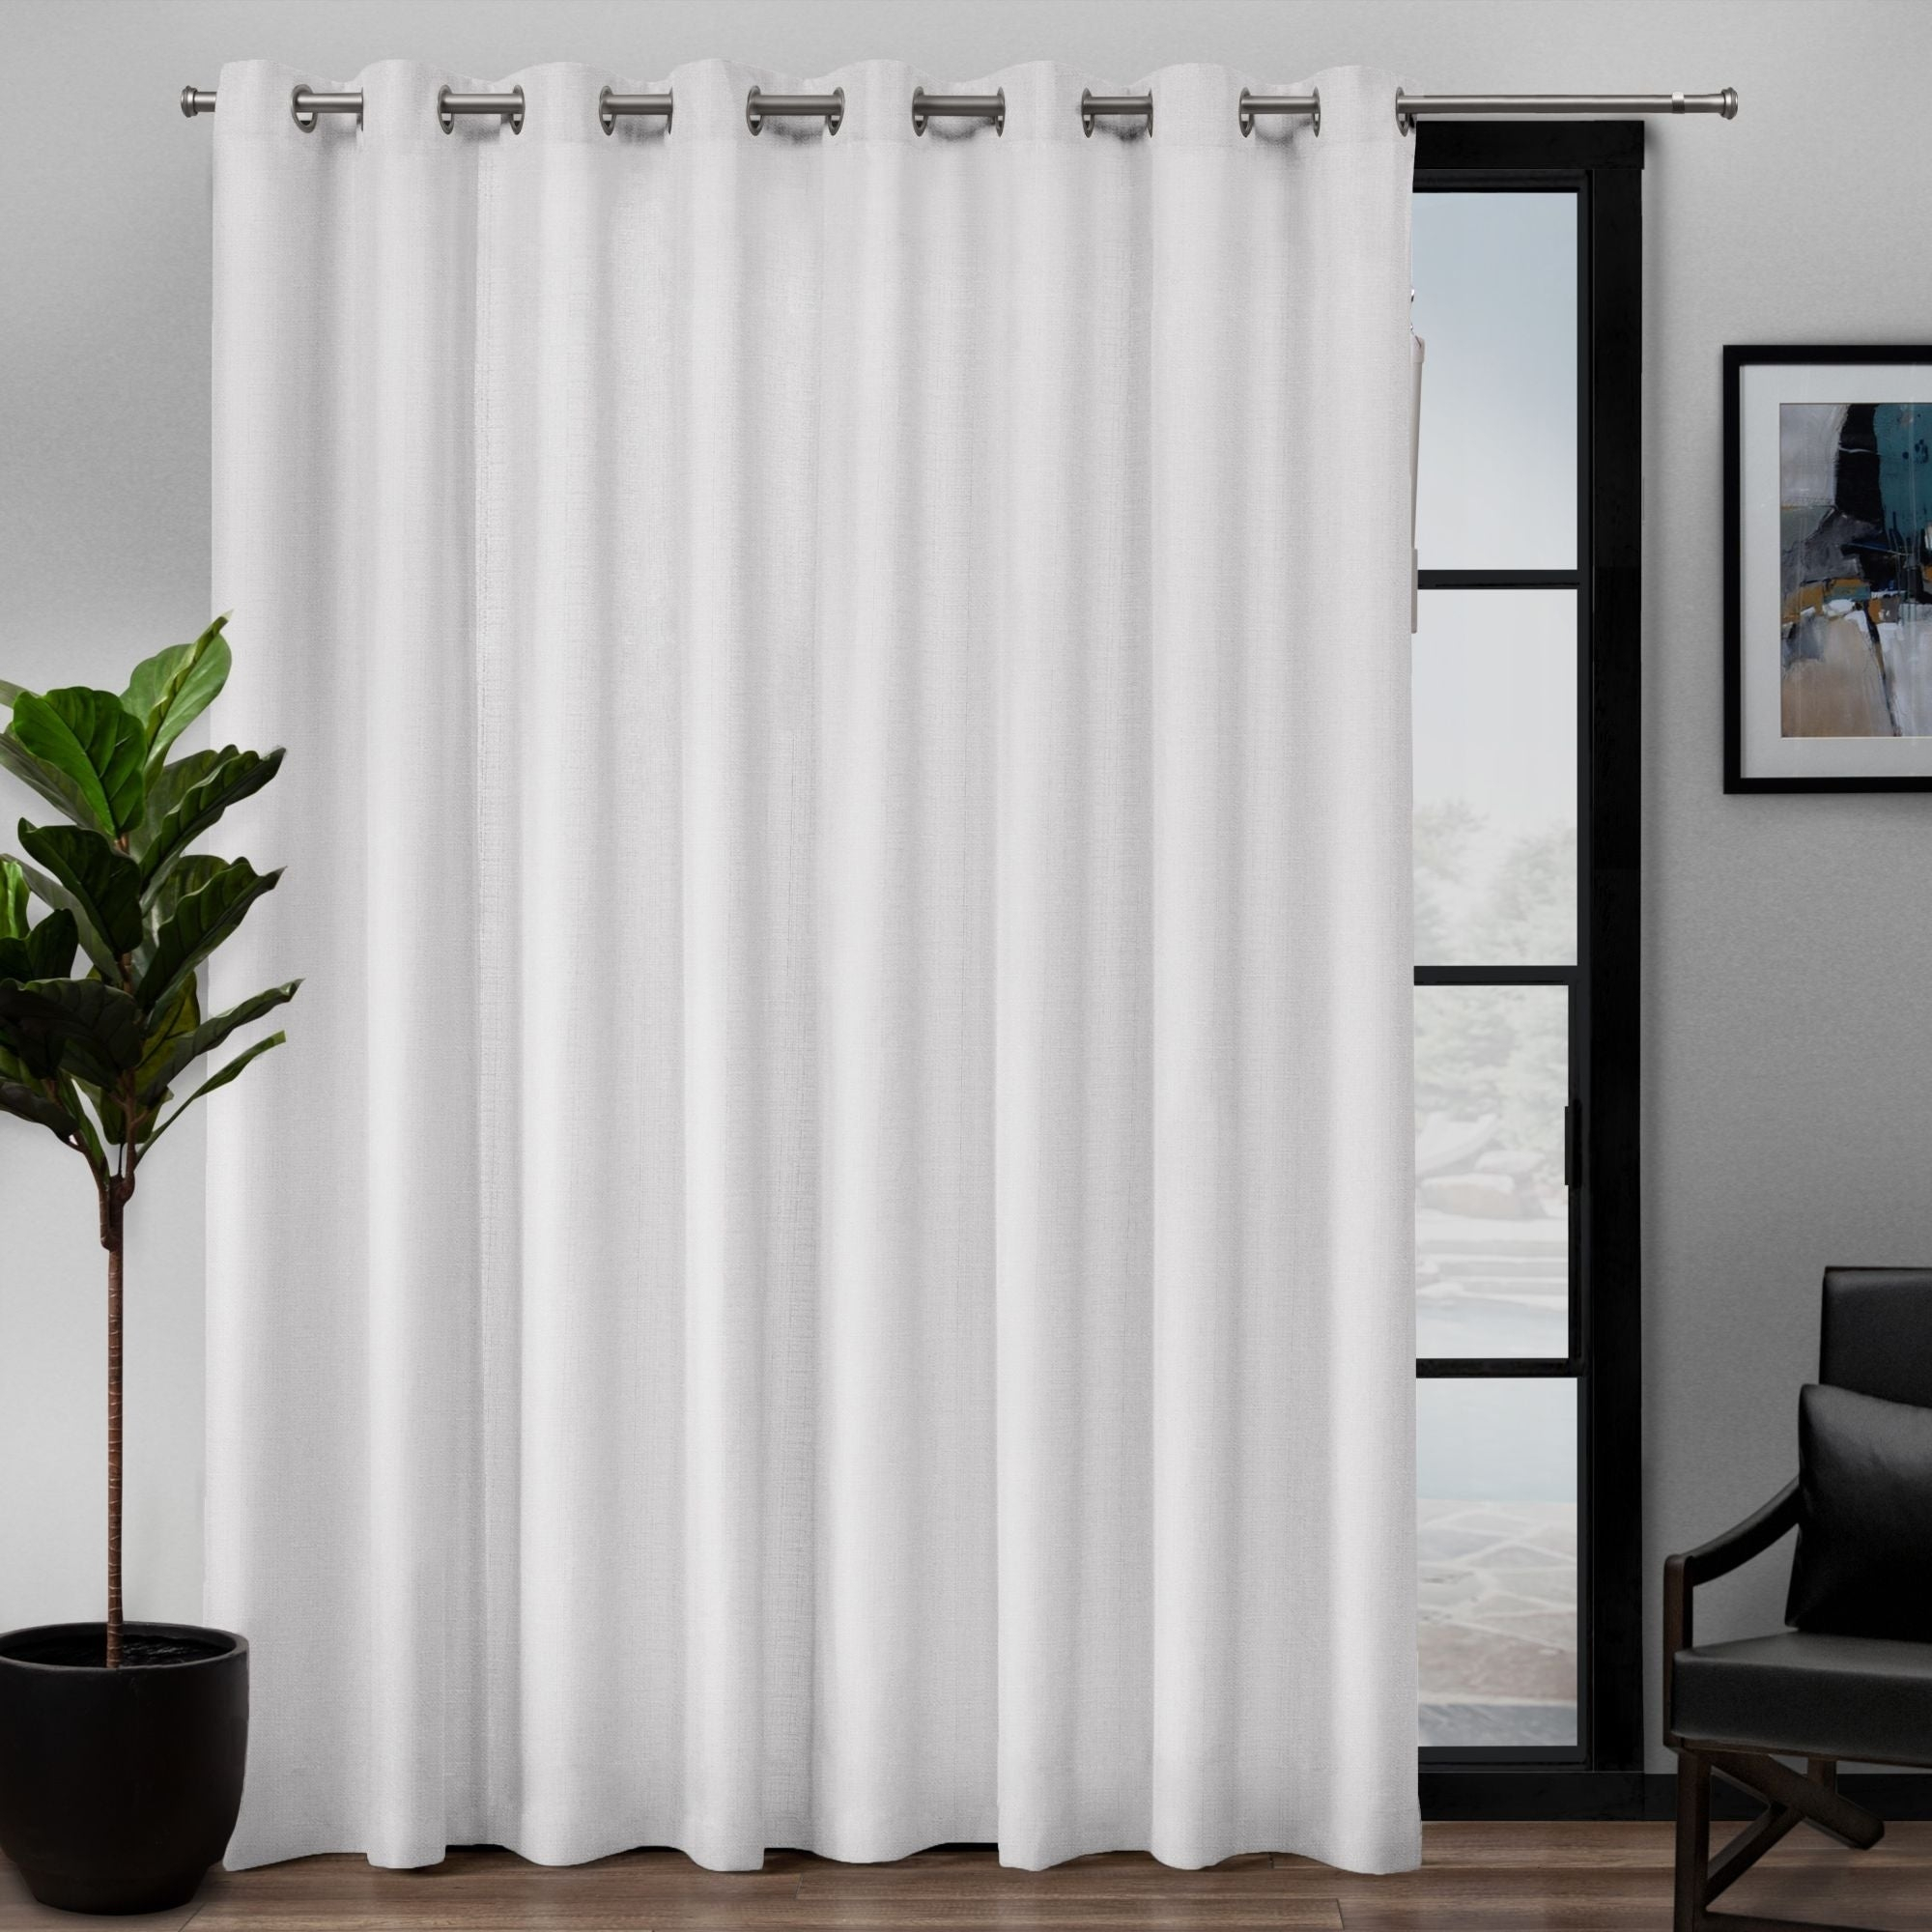 Ati Home Loha Patio Grommet Top Single Curtain Panel – 108x84 Inside Davis Patio Grommet Top Single Curtain Panels (View 2 of 20)